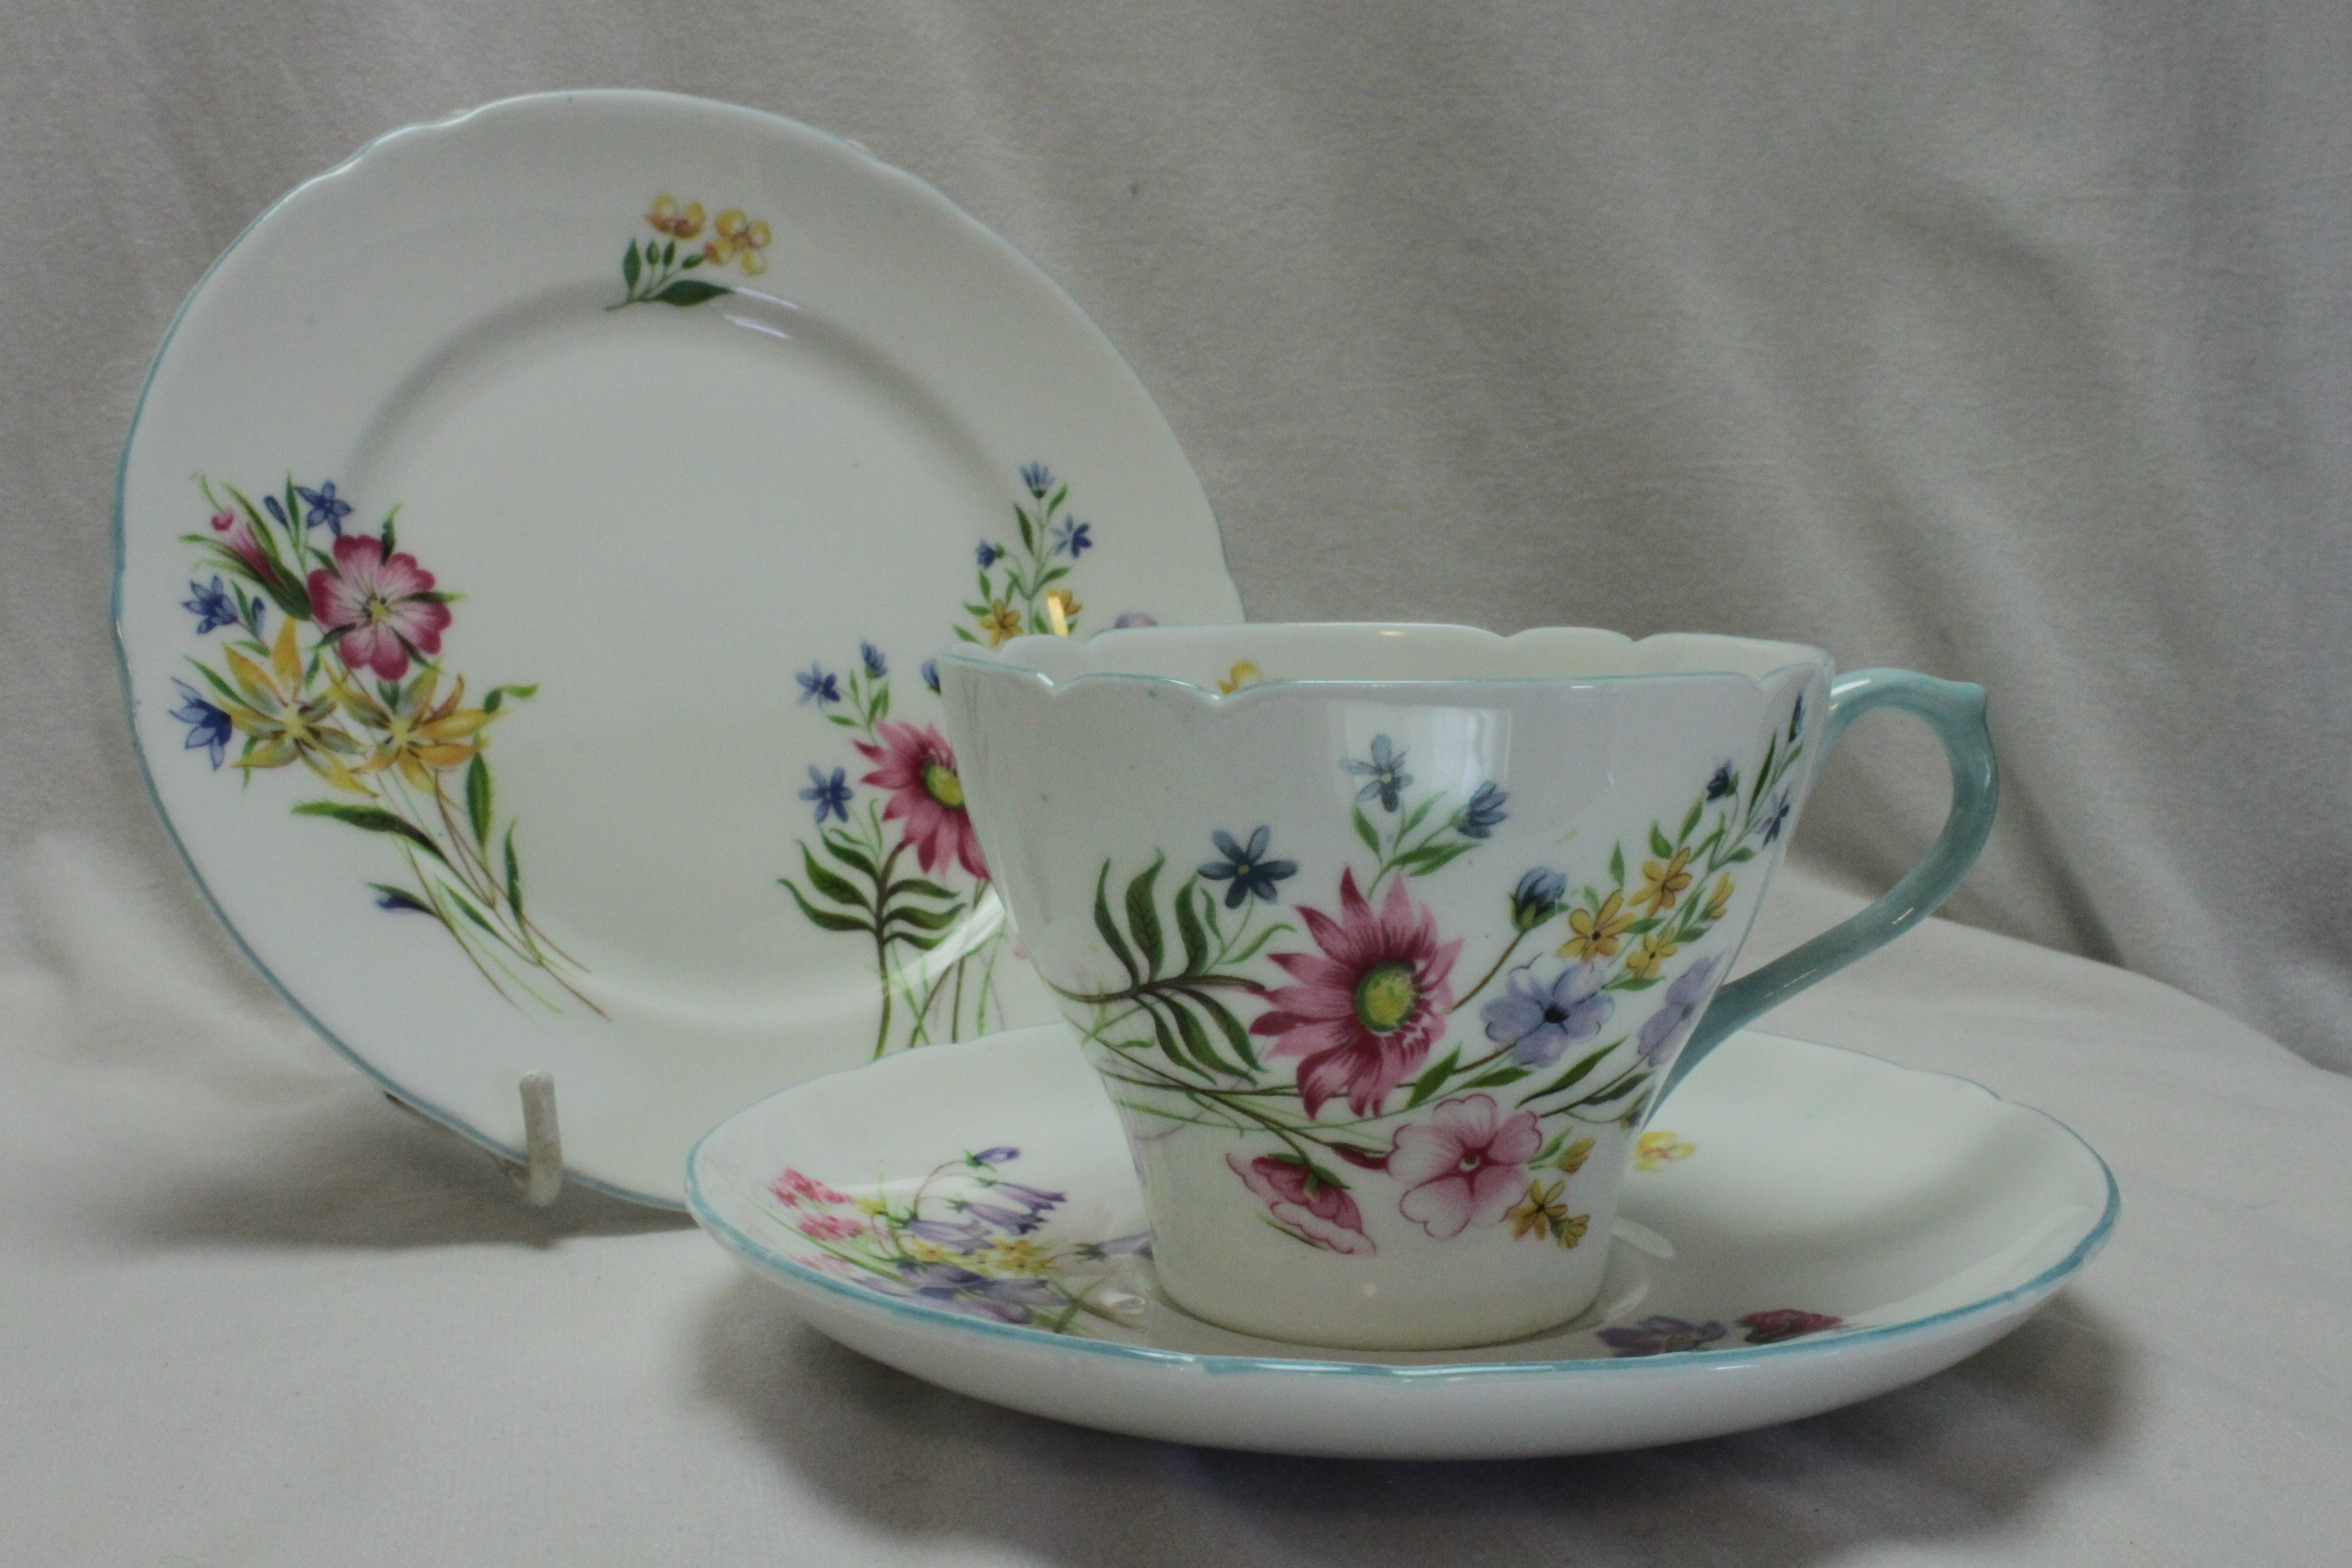 Shelley cup saucer & plate Wildflowers pattern 13668